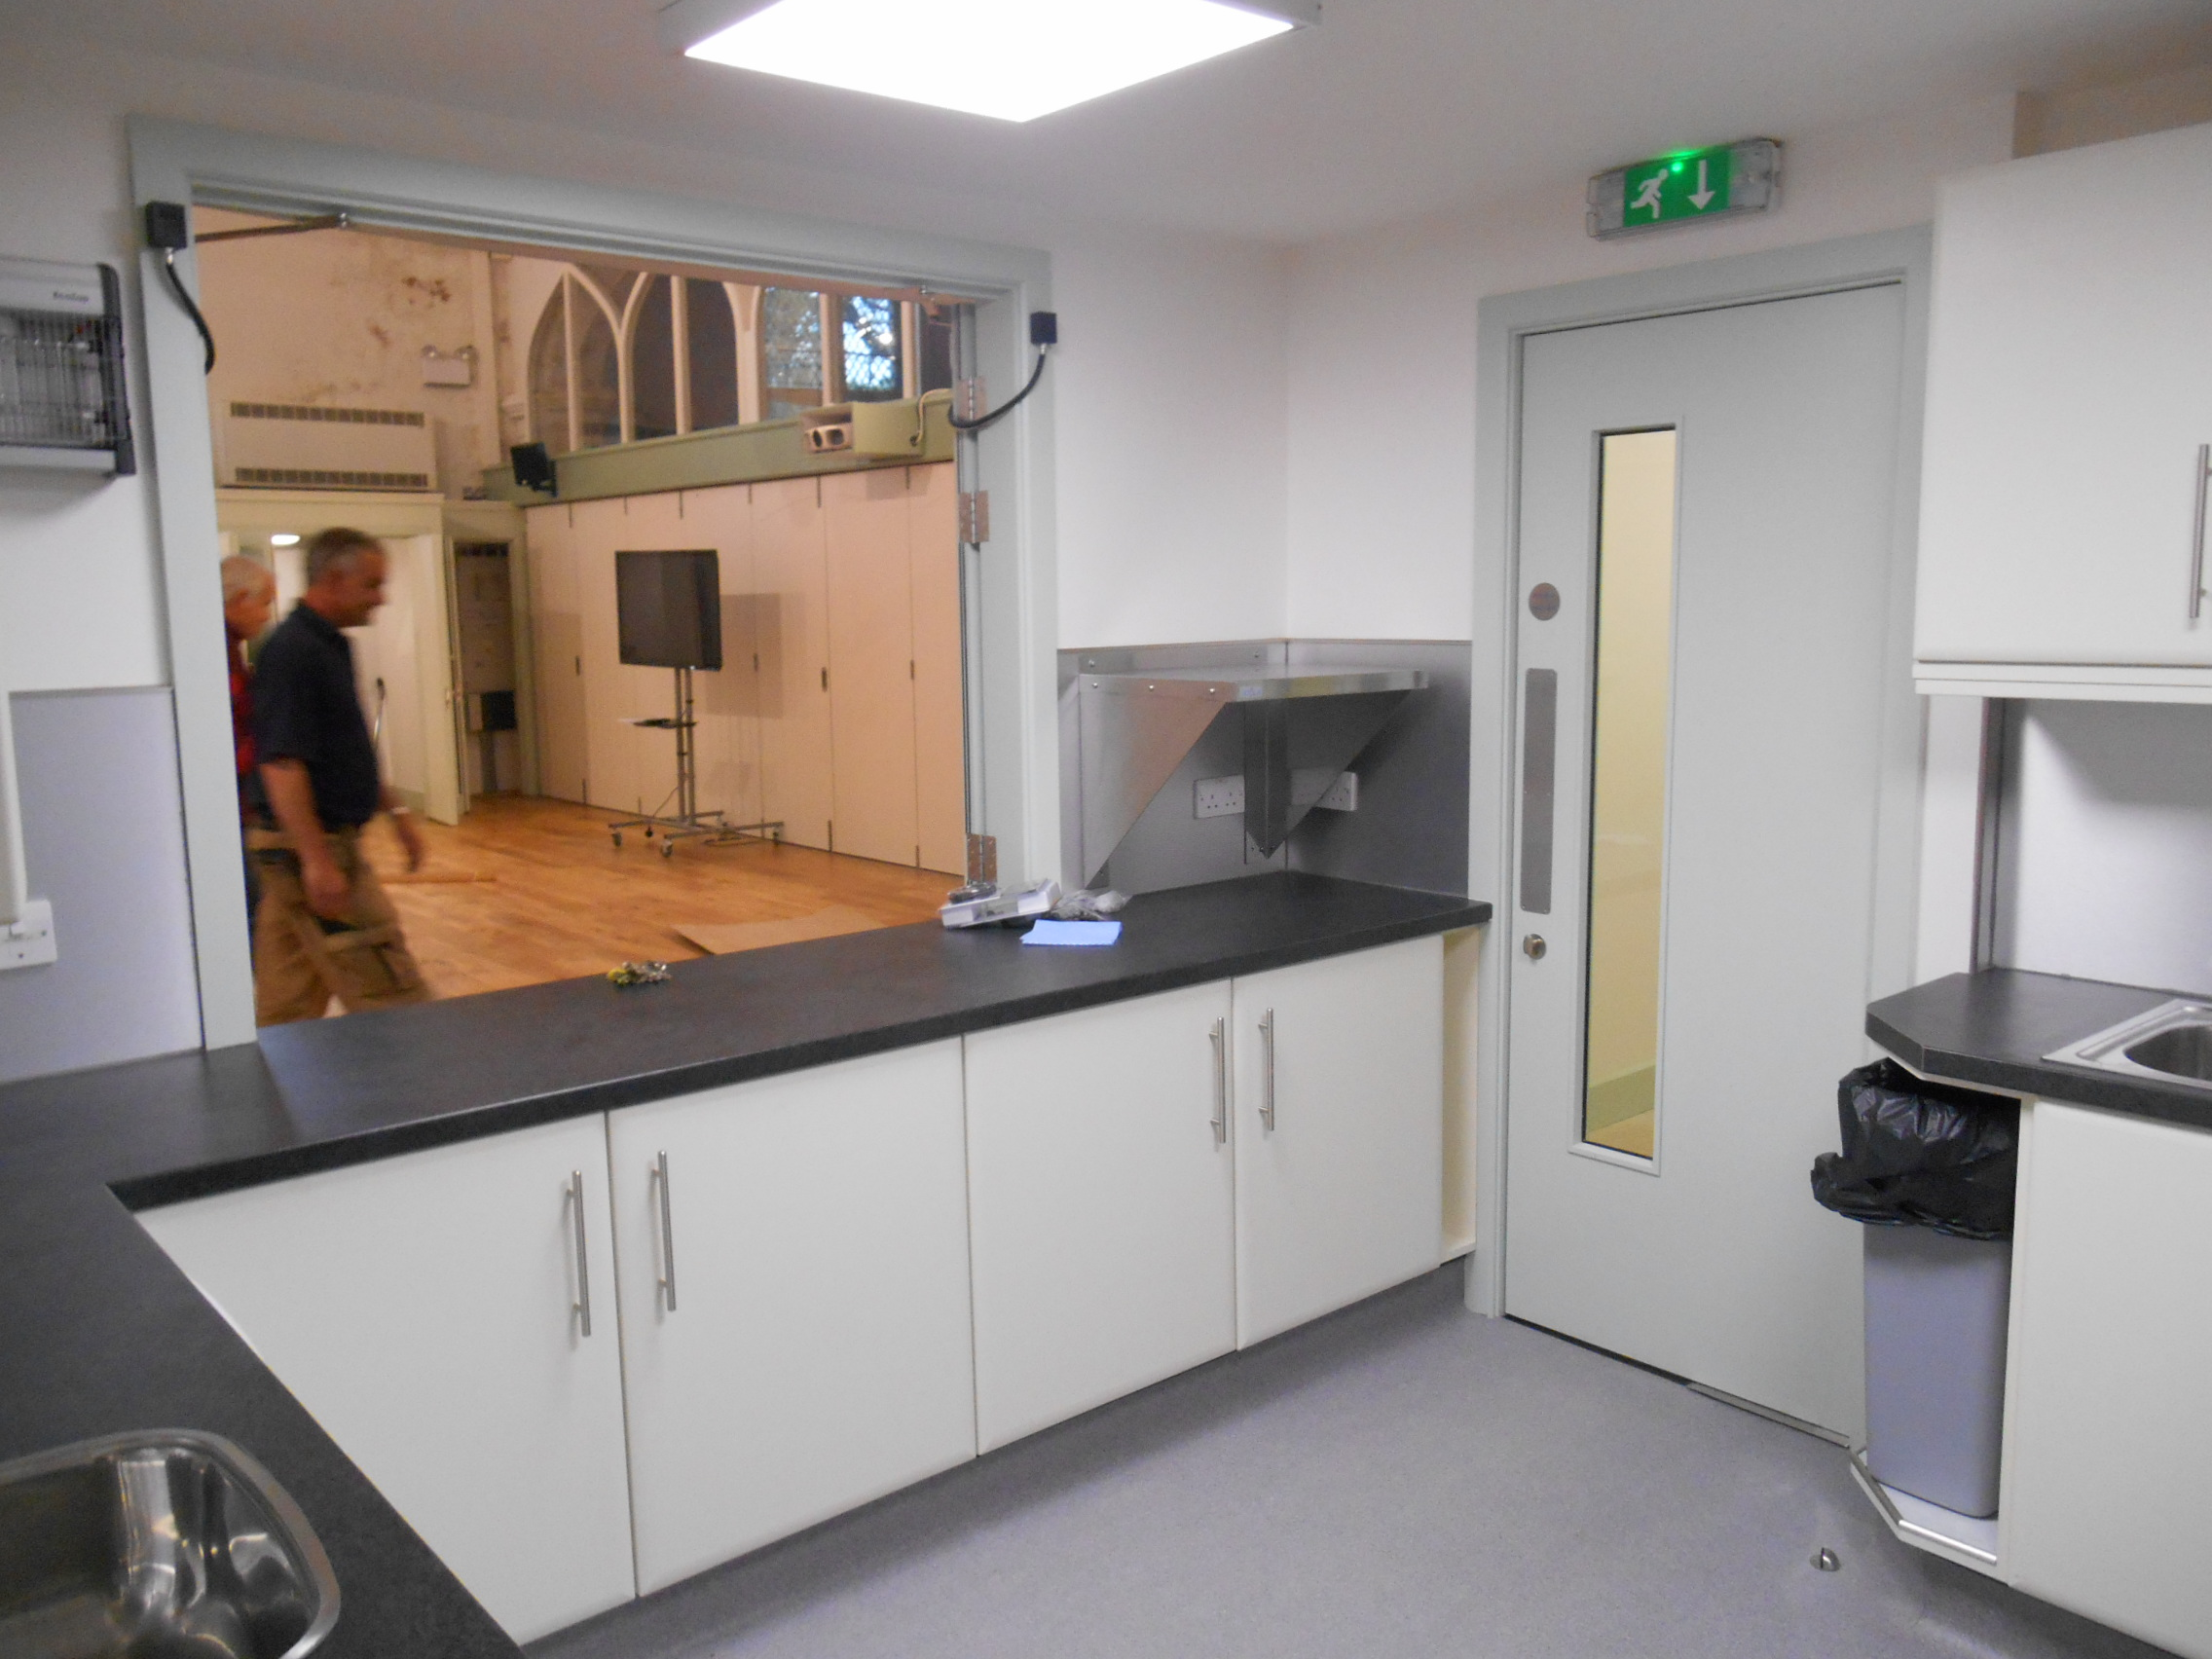 The new kitchen at St Deinst, Herefordshire, Llangarron